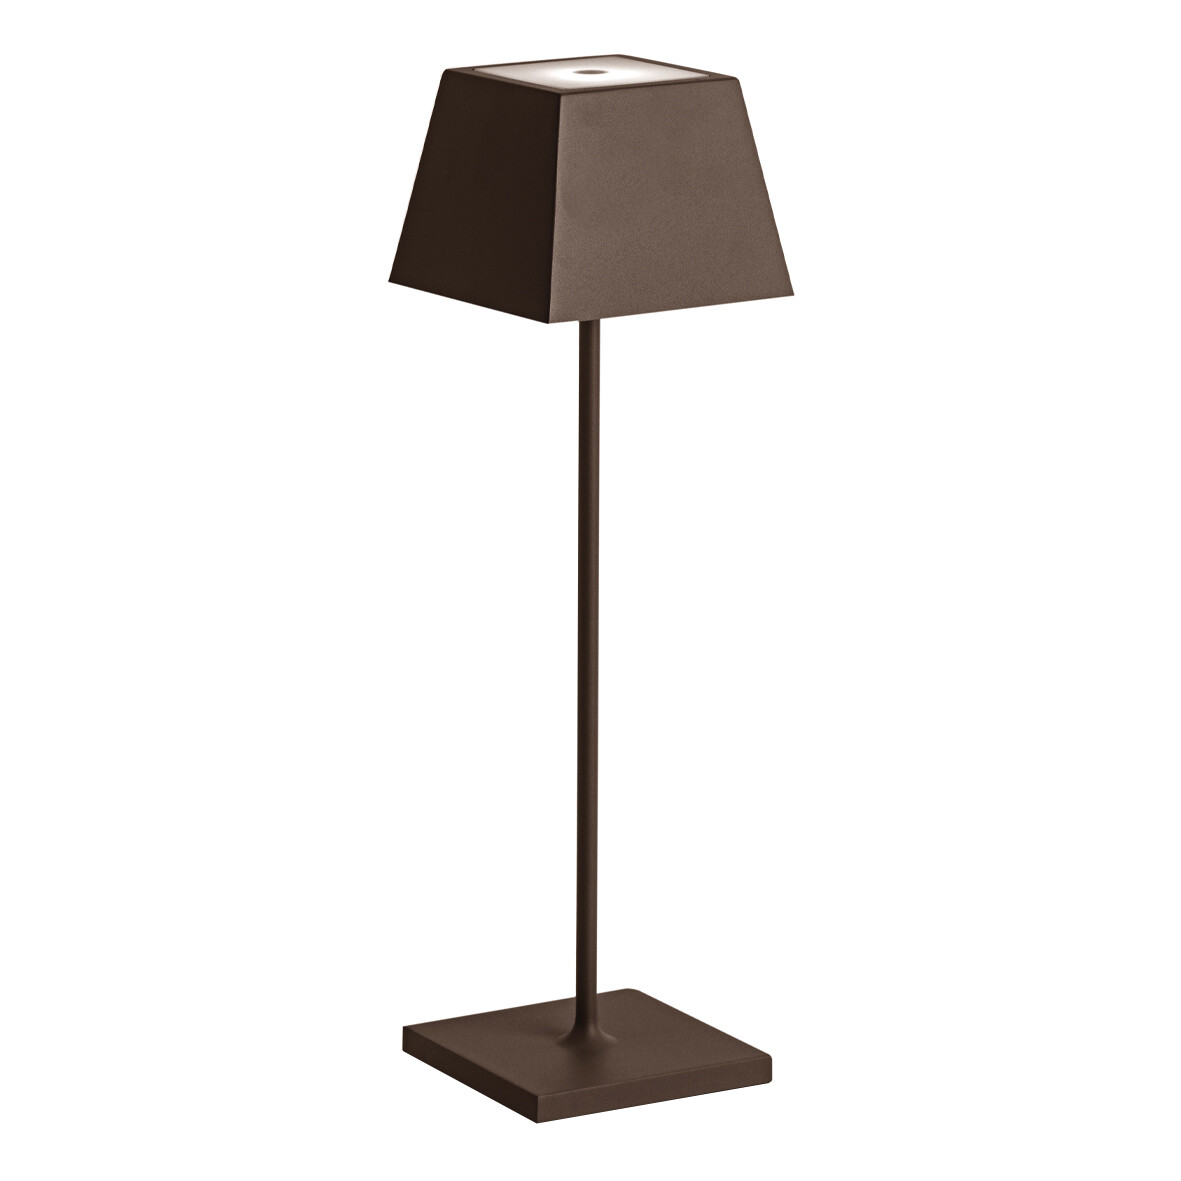 SIESTA LED table lamp corten (2700K), portable and rechargeable